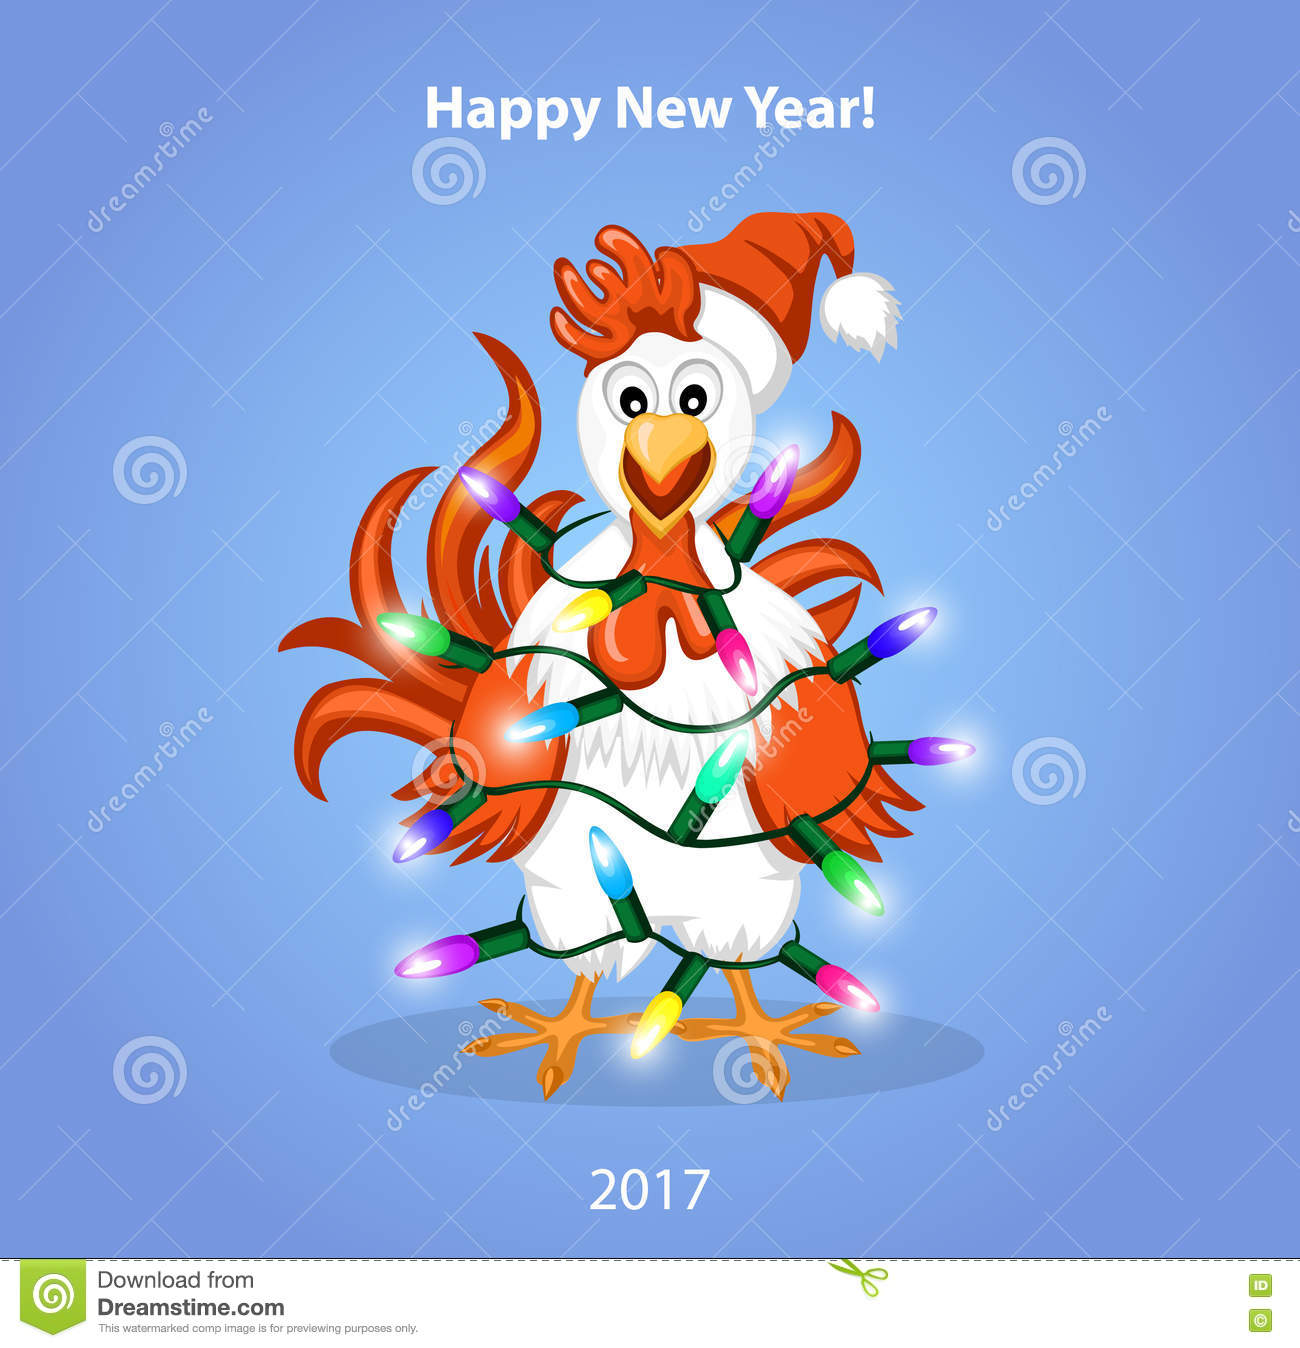 Christmas And Happy New Year Greeting Card With Cute Funny Rooster